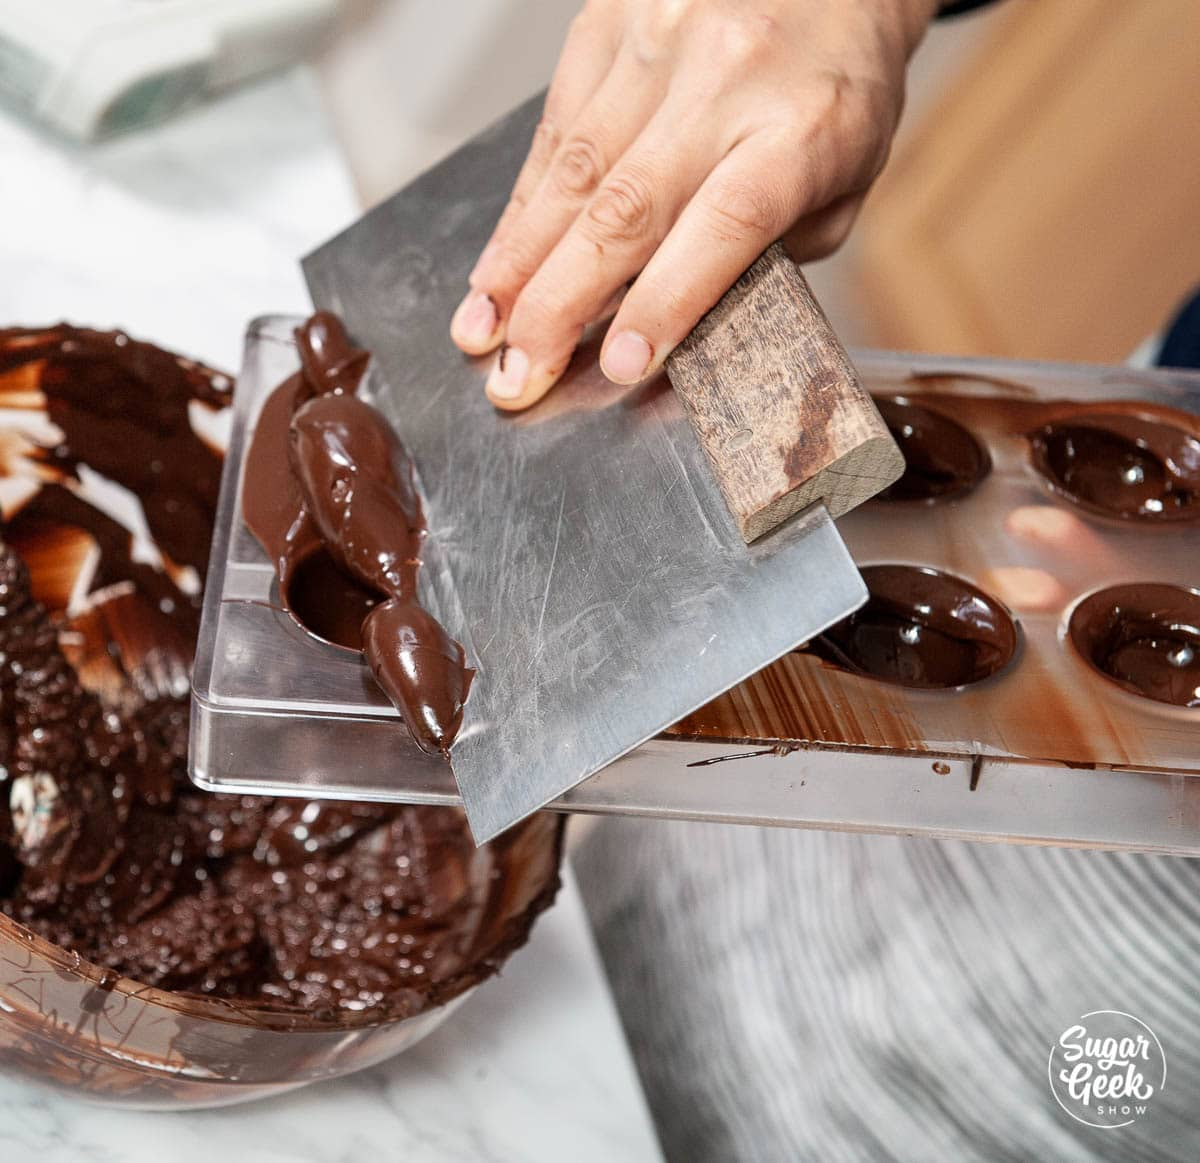 scraping excess chocolate off the mold with a bench scraper